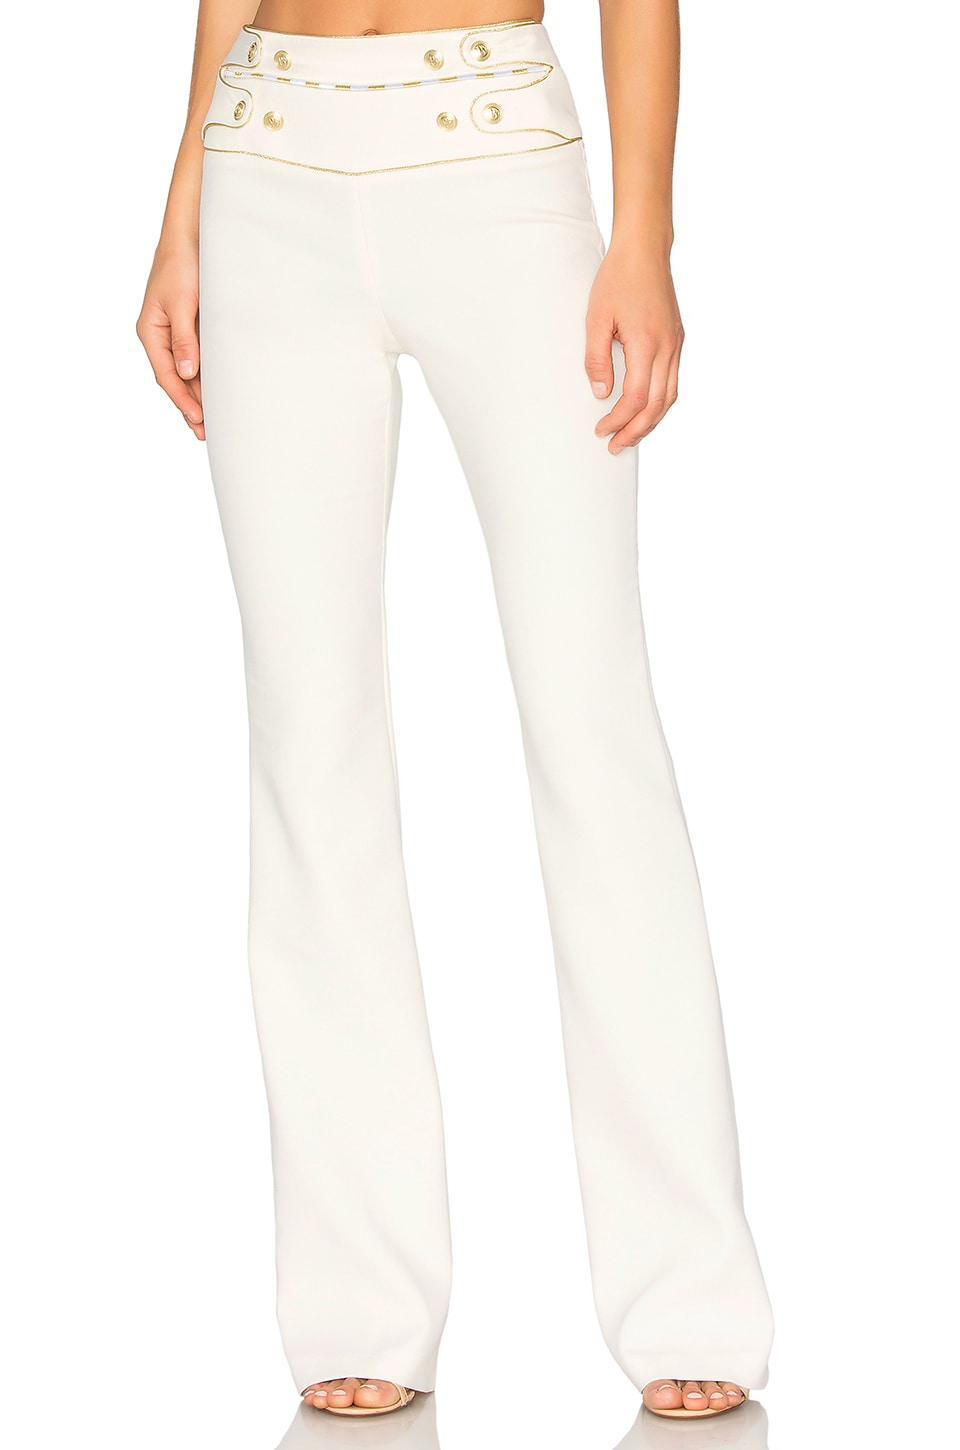 Pierre Balmain High Waist Wide Leg Pant in Off White